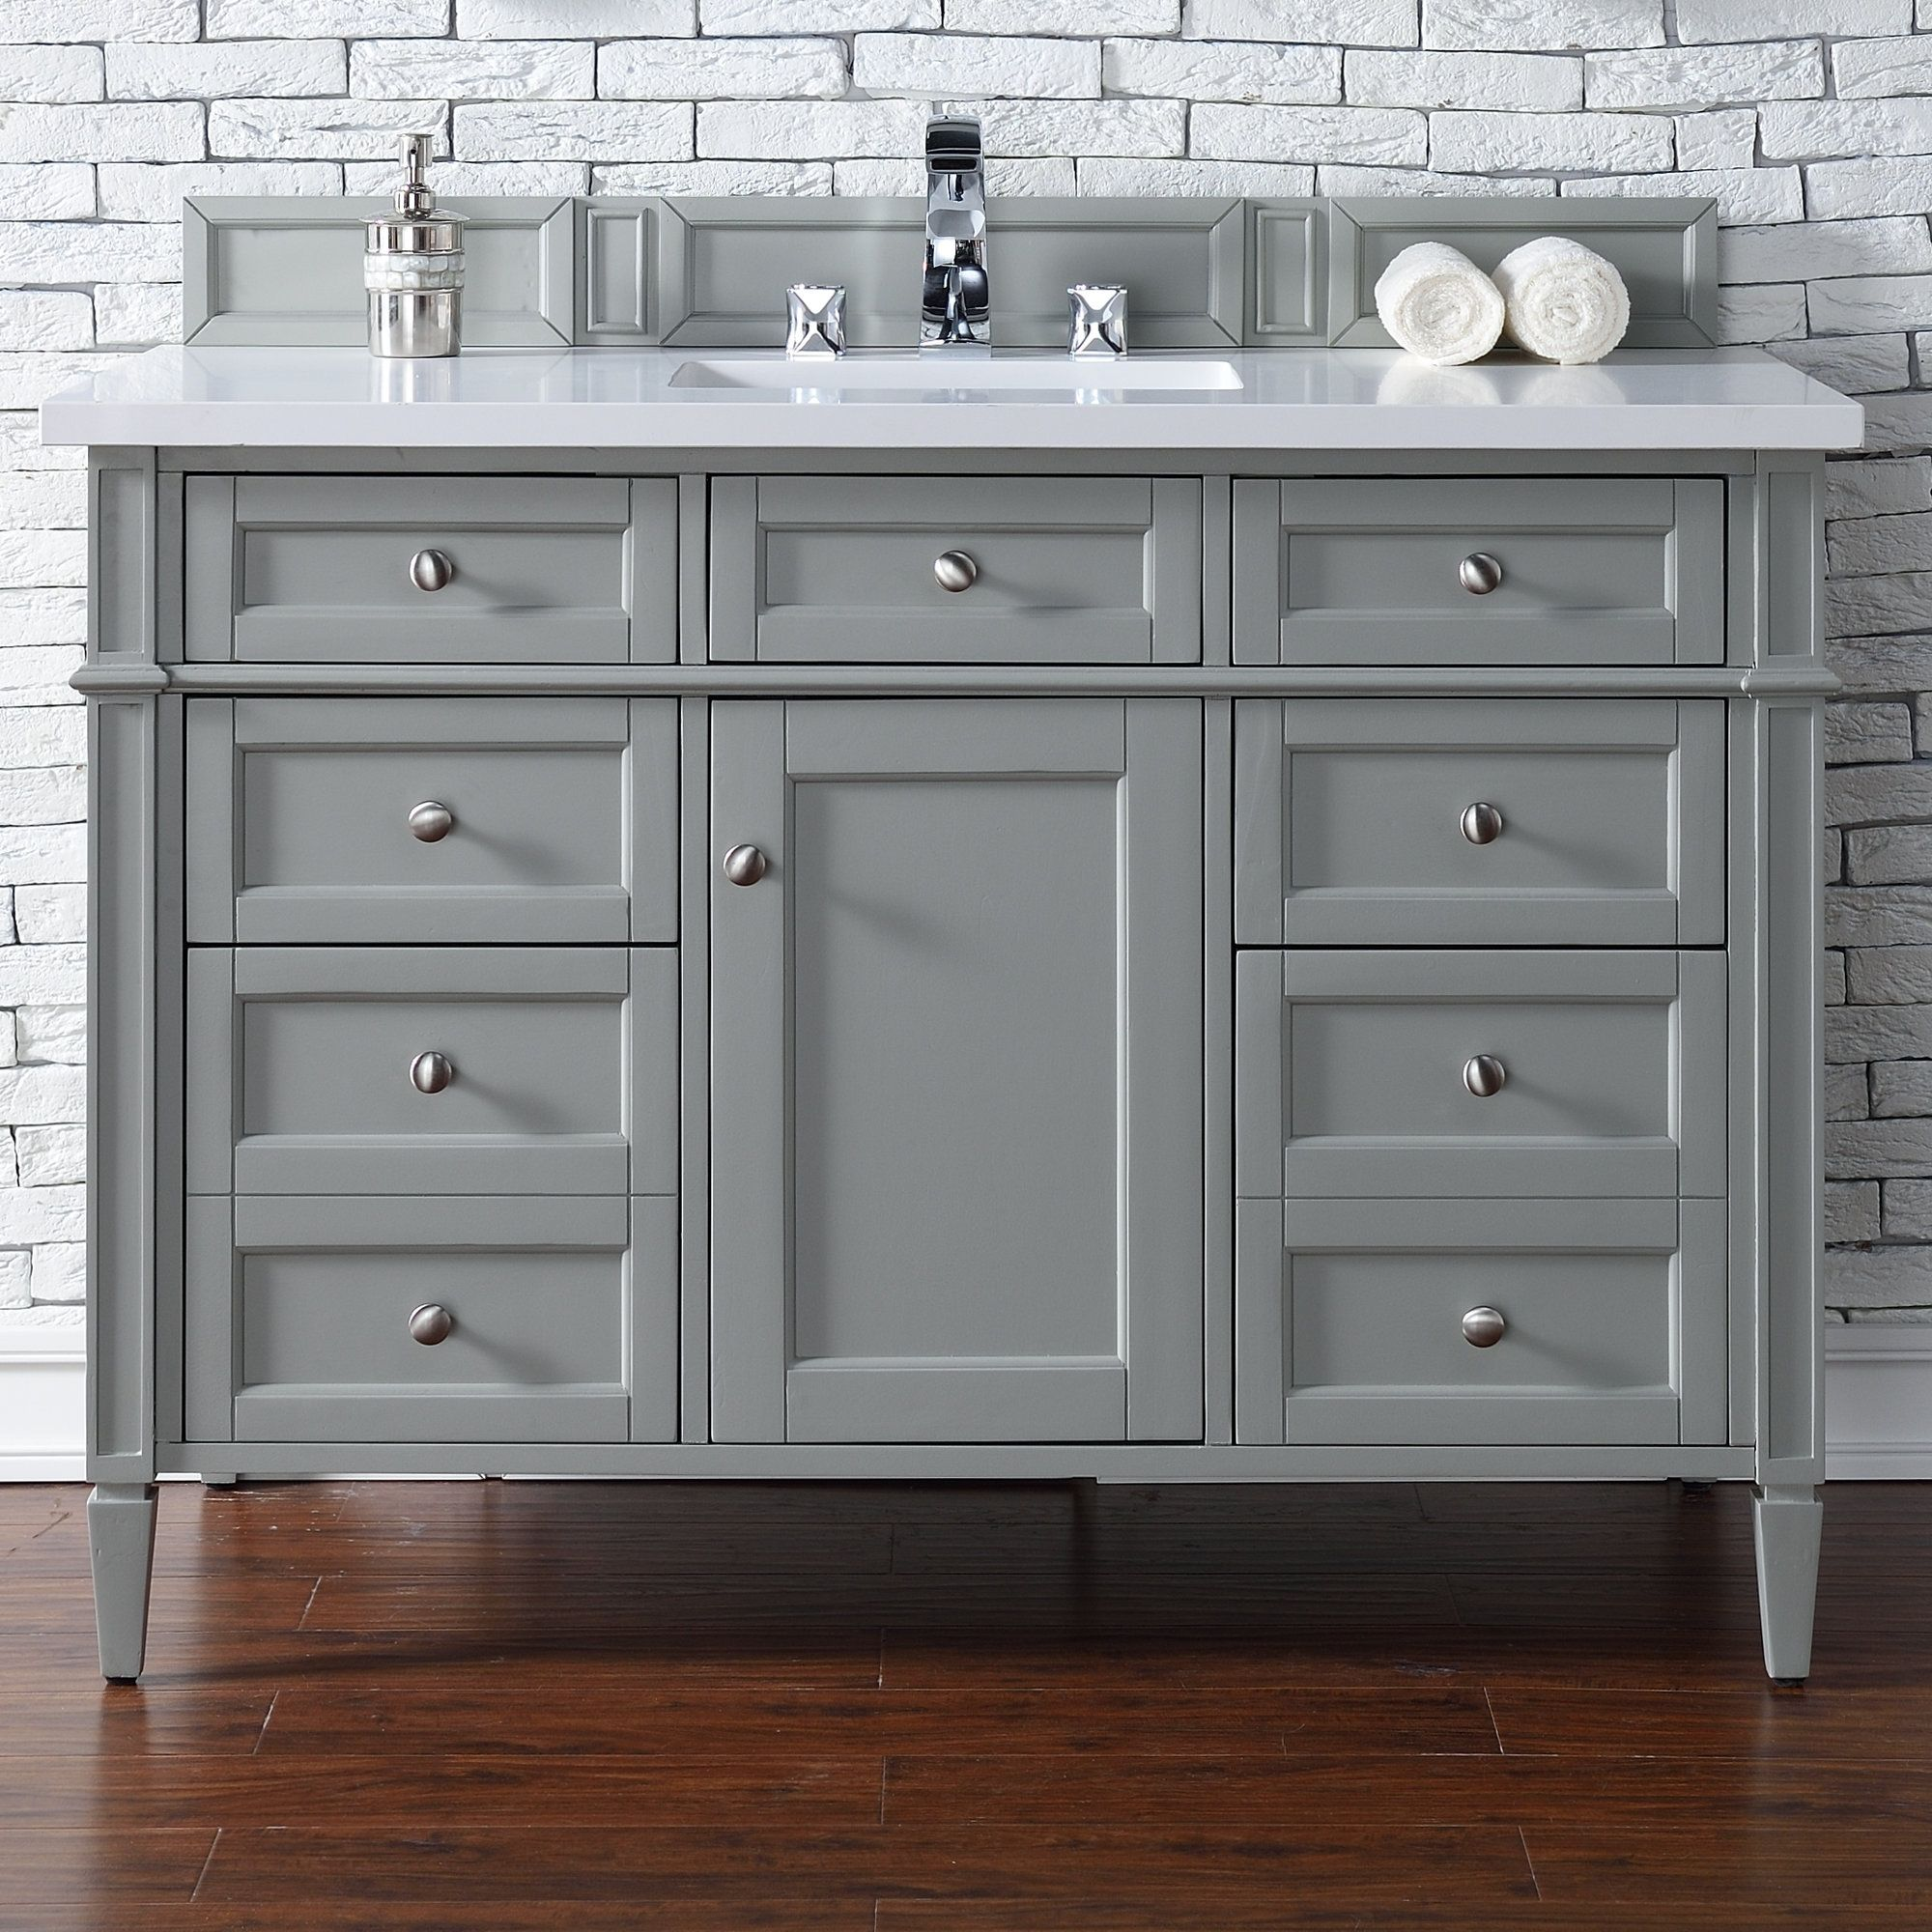 Brittany Single Urban Gray Bathroom Vanity Set Products - 48 gray bathroom vanity